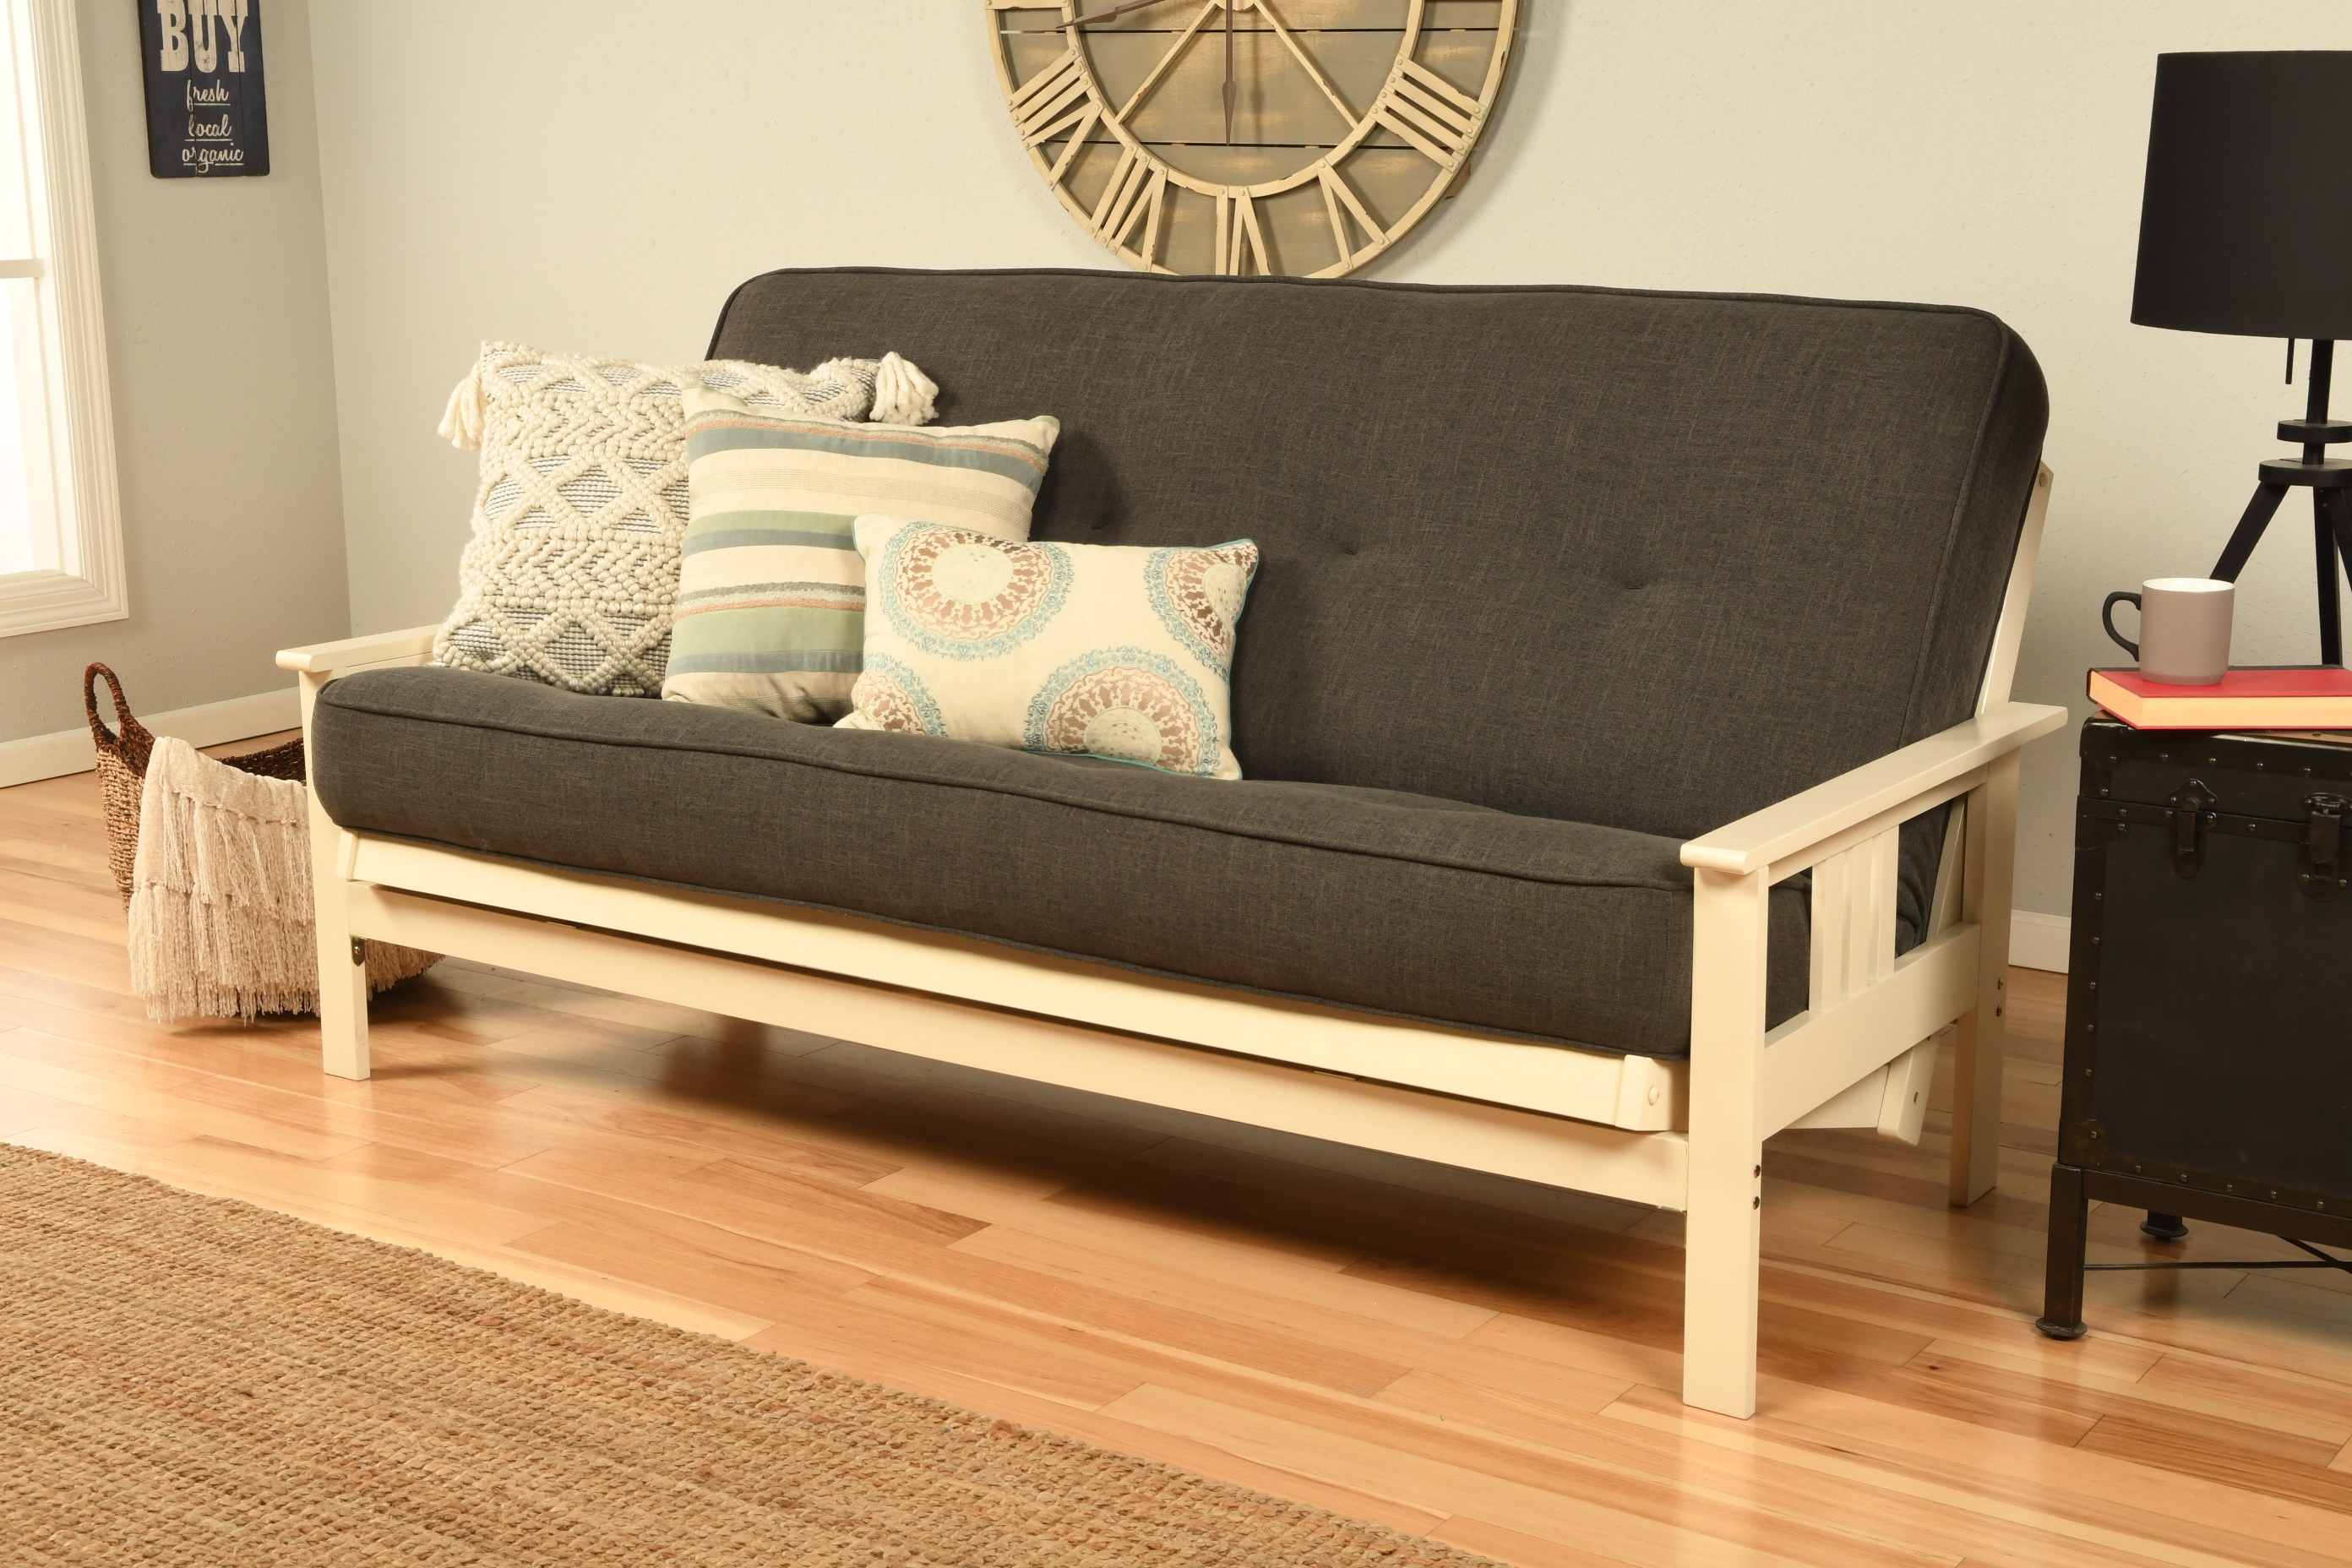 Mission Arm White Full Futon Frame With Linen Charcoal